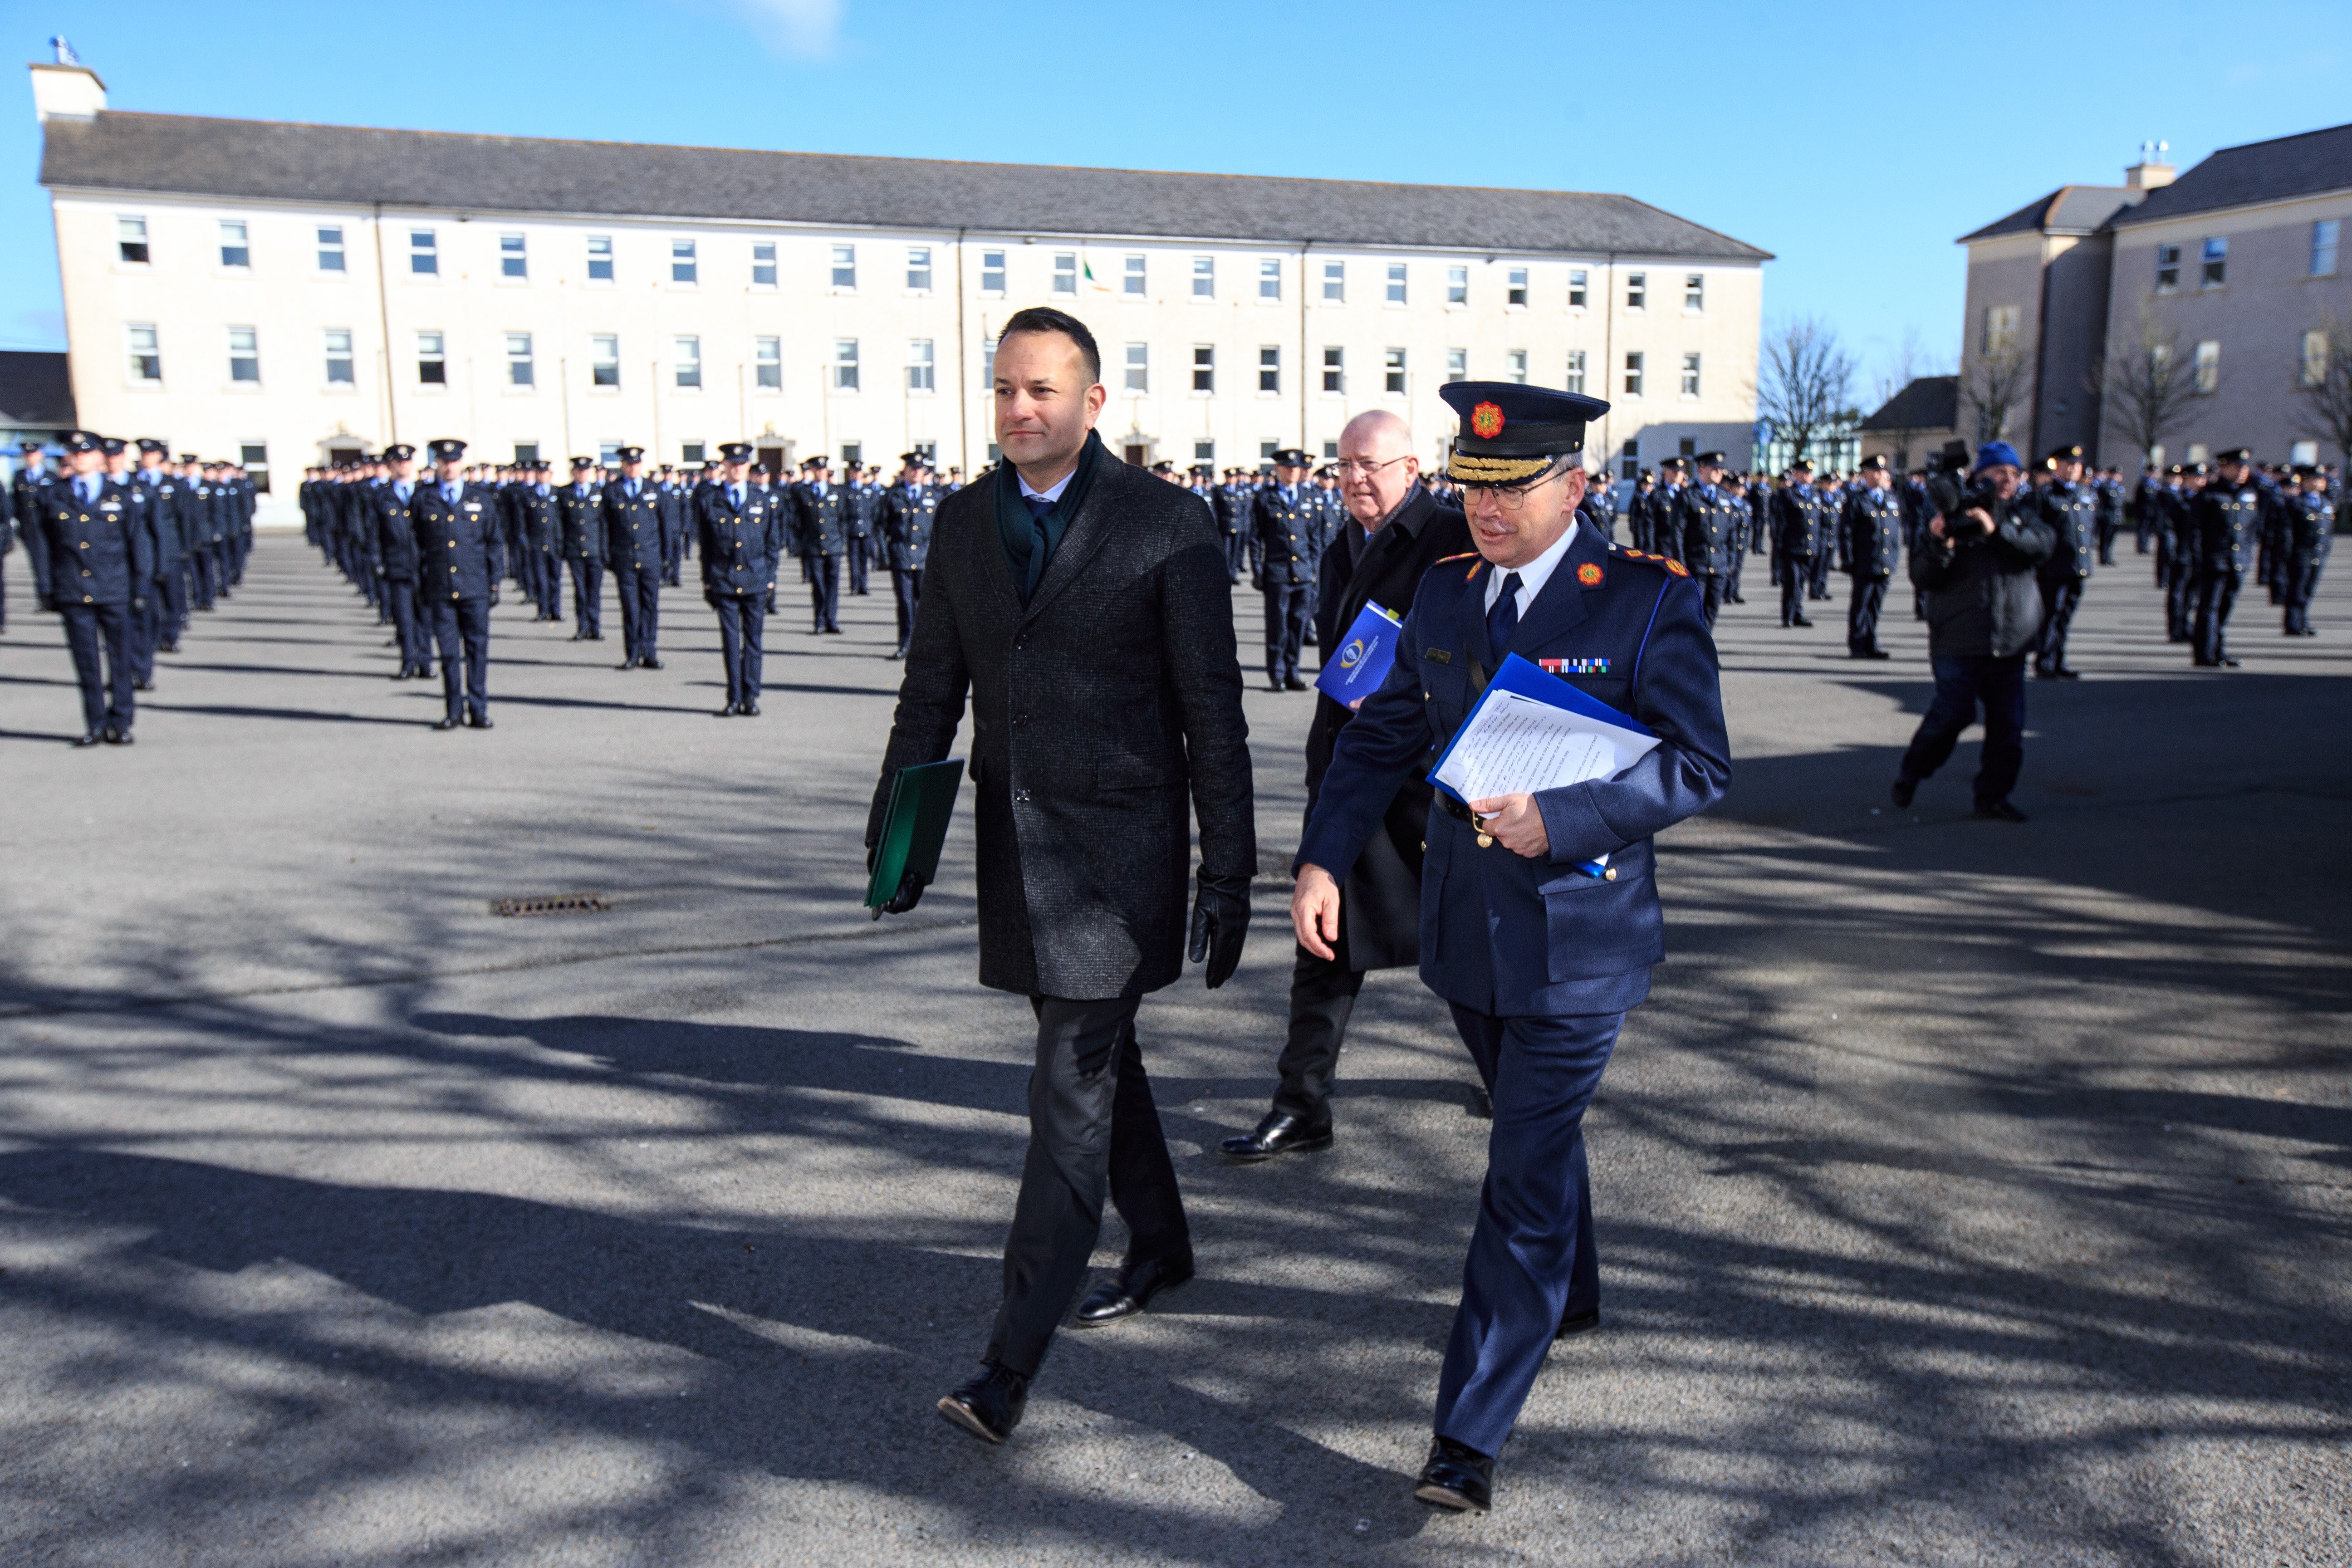 20032020 Taoiseach attends passing out ceremony, Templemore